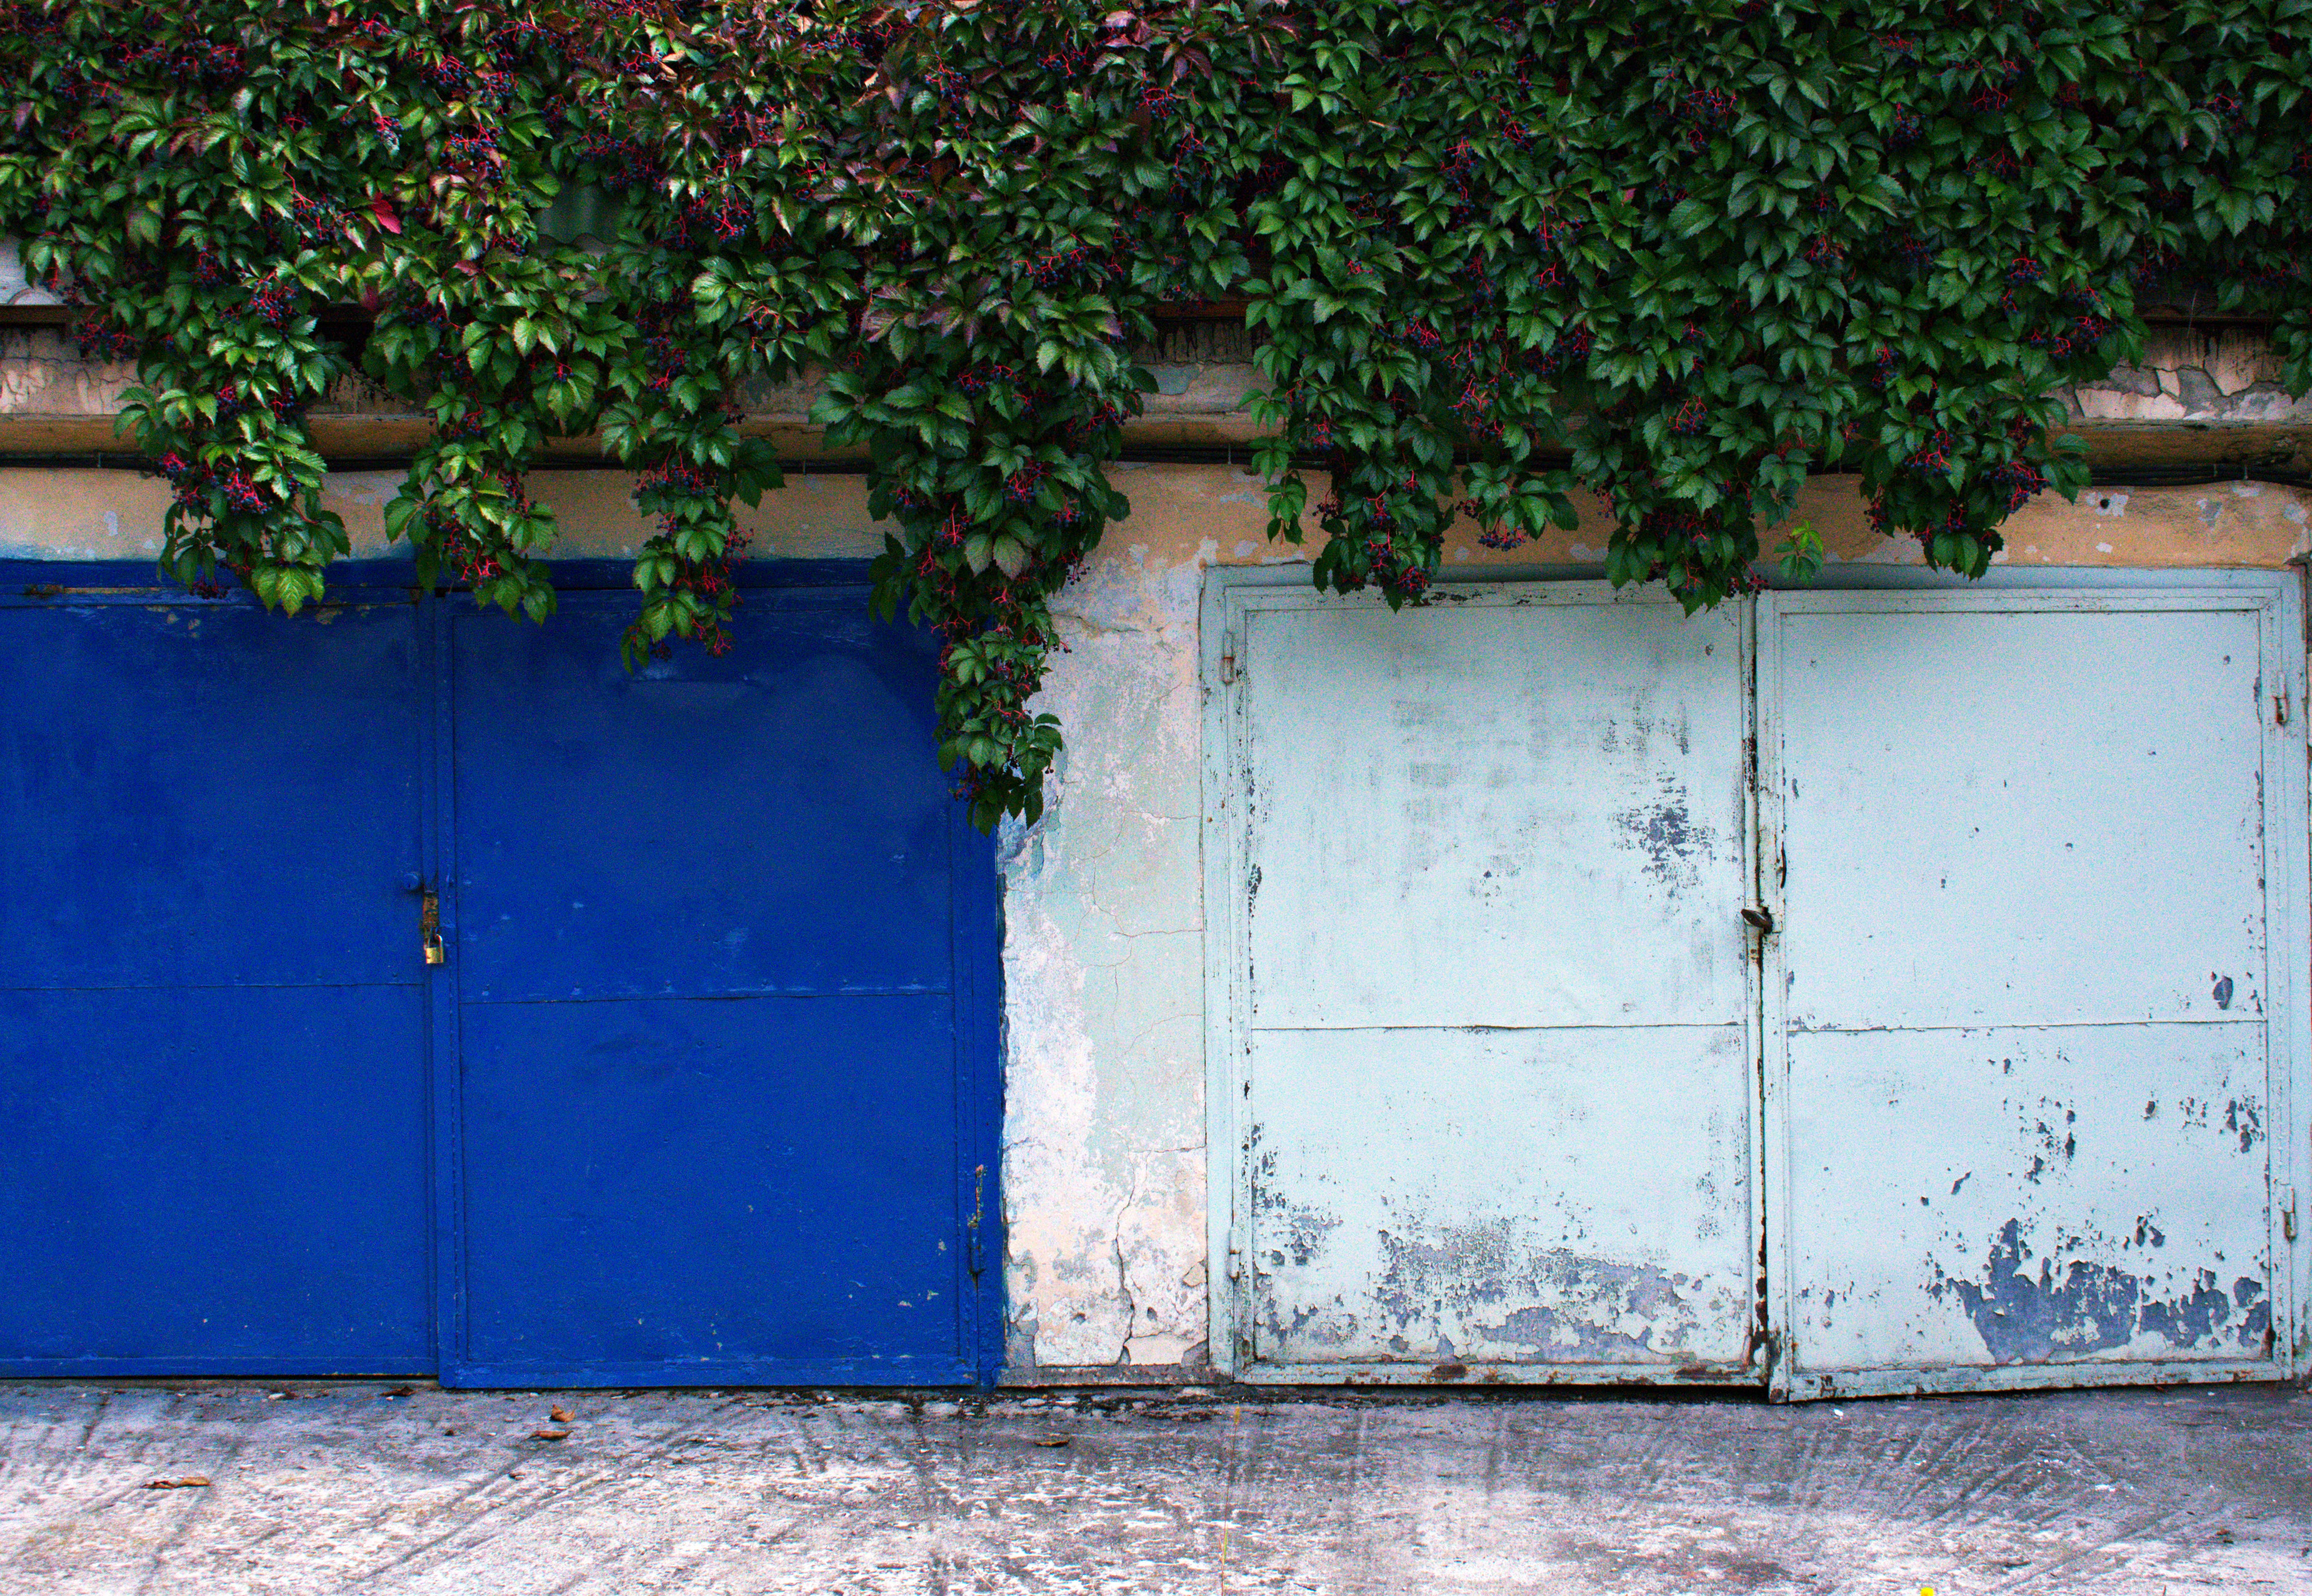 Two Blue Metal Closed Gates